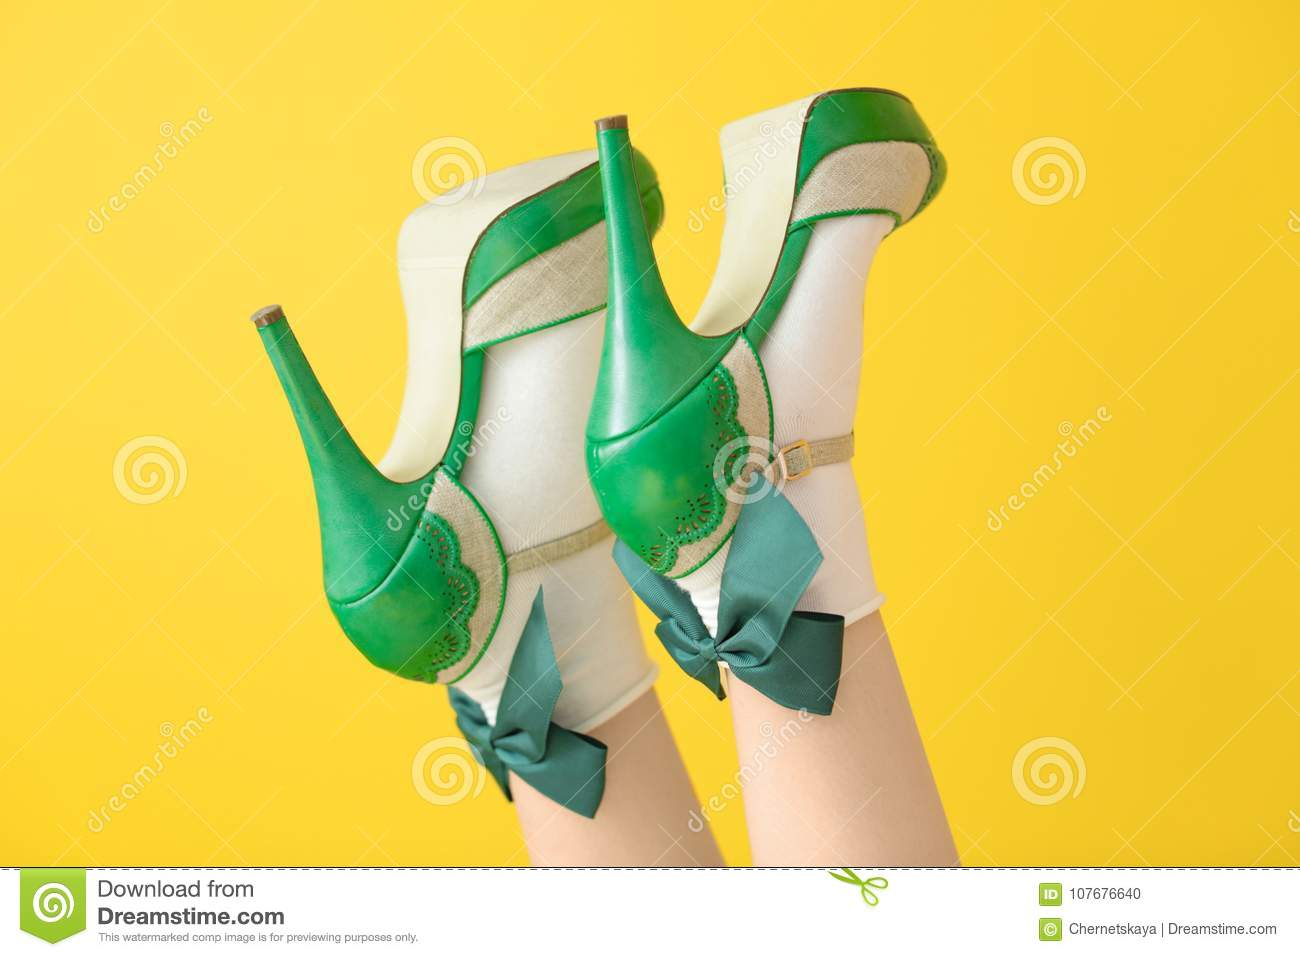 Female legs in green high heel shoes and socks